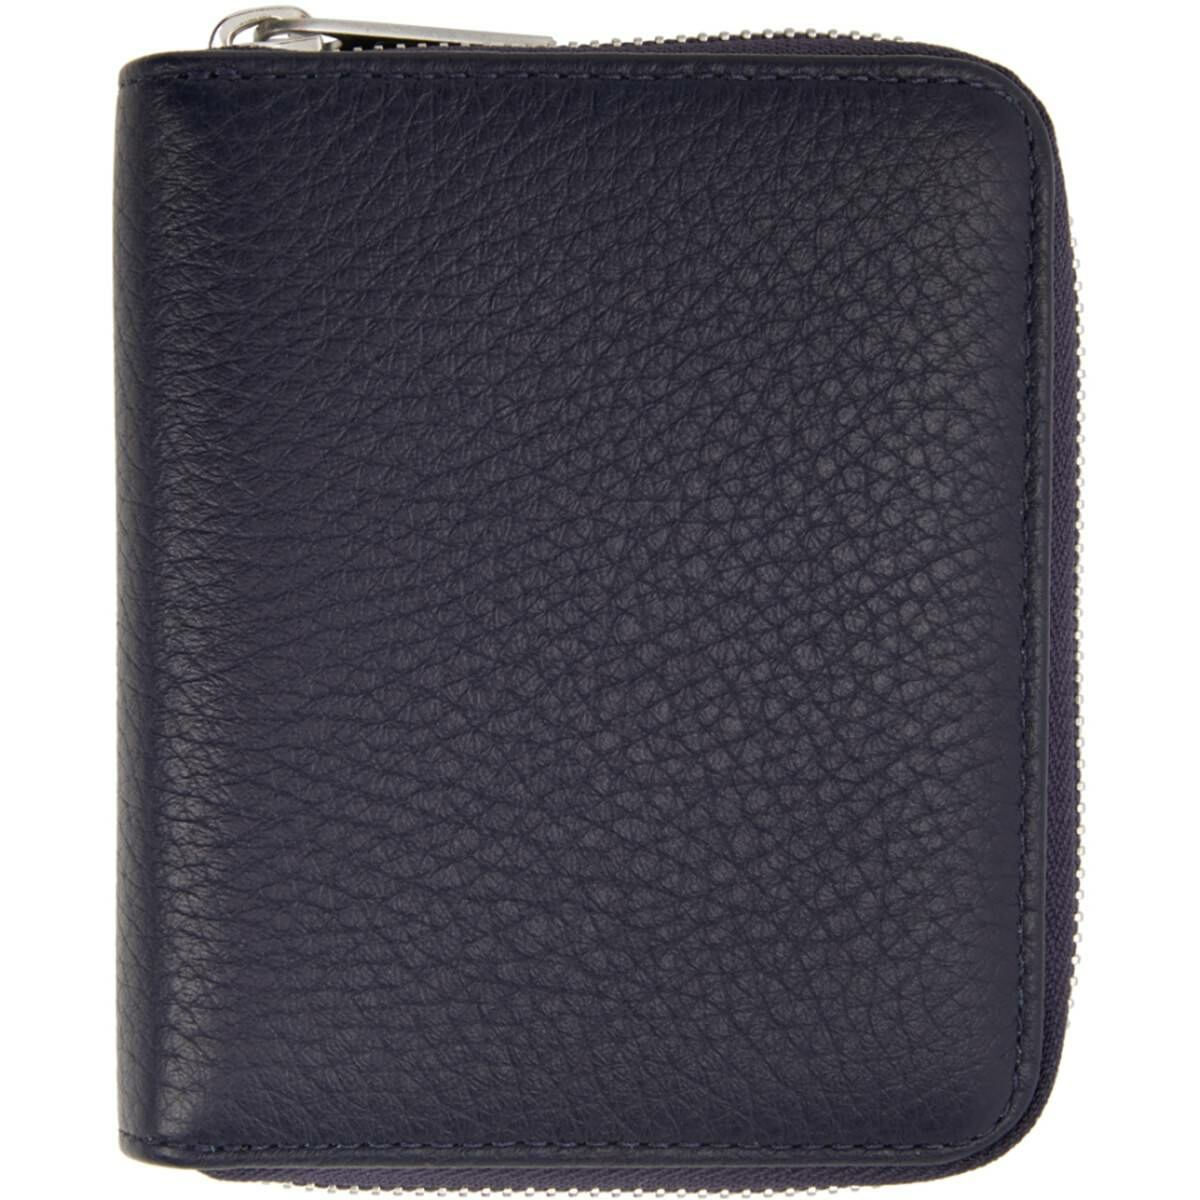 Maison Margiela Navy Zip-Around Wallet Ssense USA MEN Men ACCESSORIES Mens WALLETS